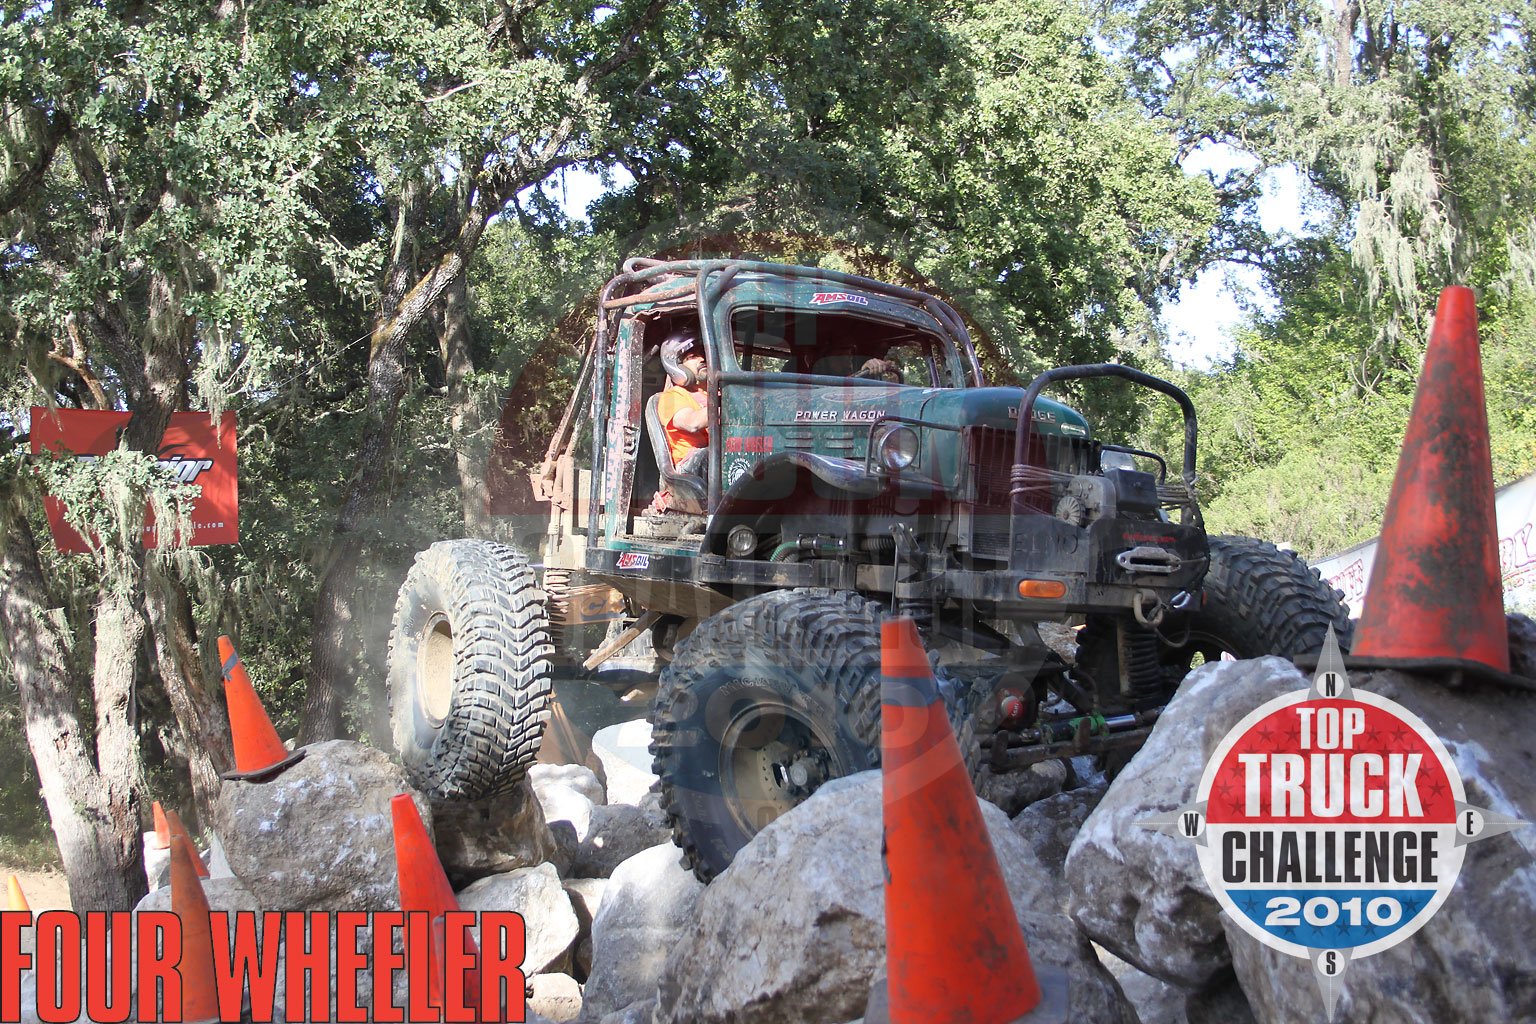 2010 Top Truck Challenge Mini Rubicon Roger King 1964 Dodge Wm300 Power Wagon